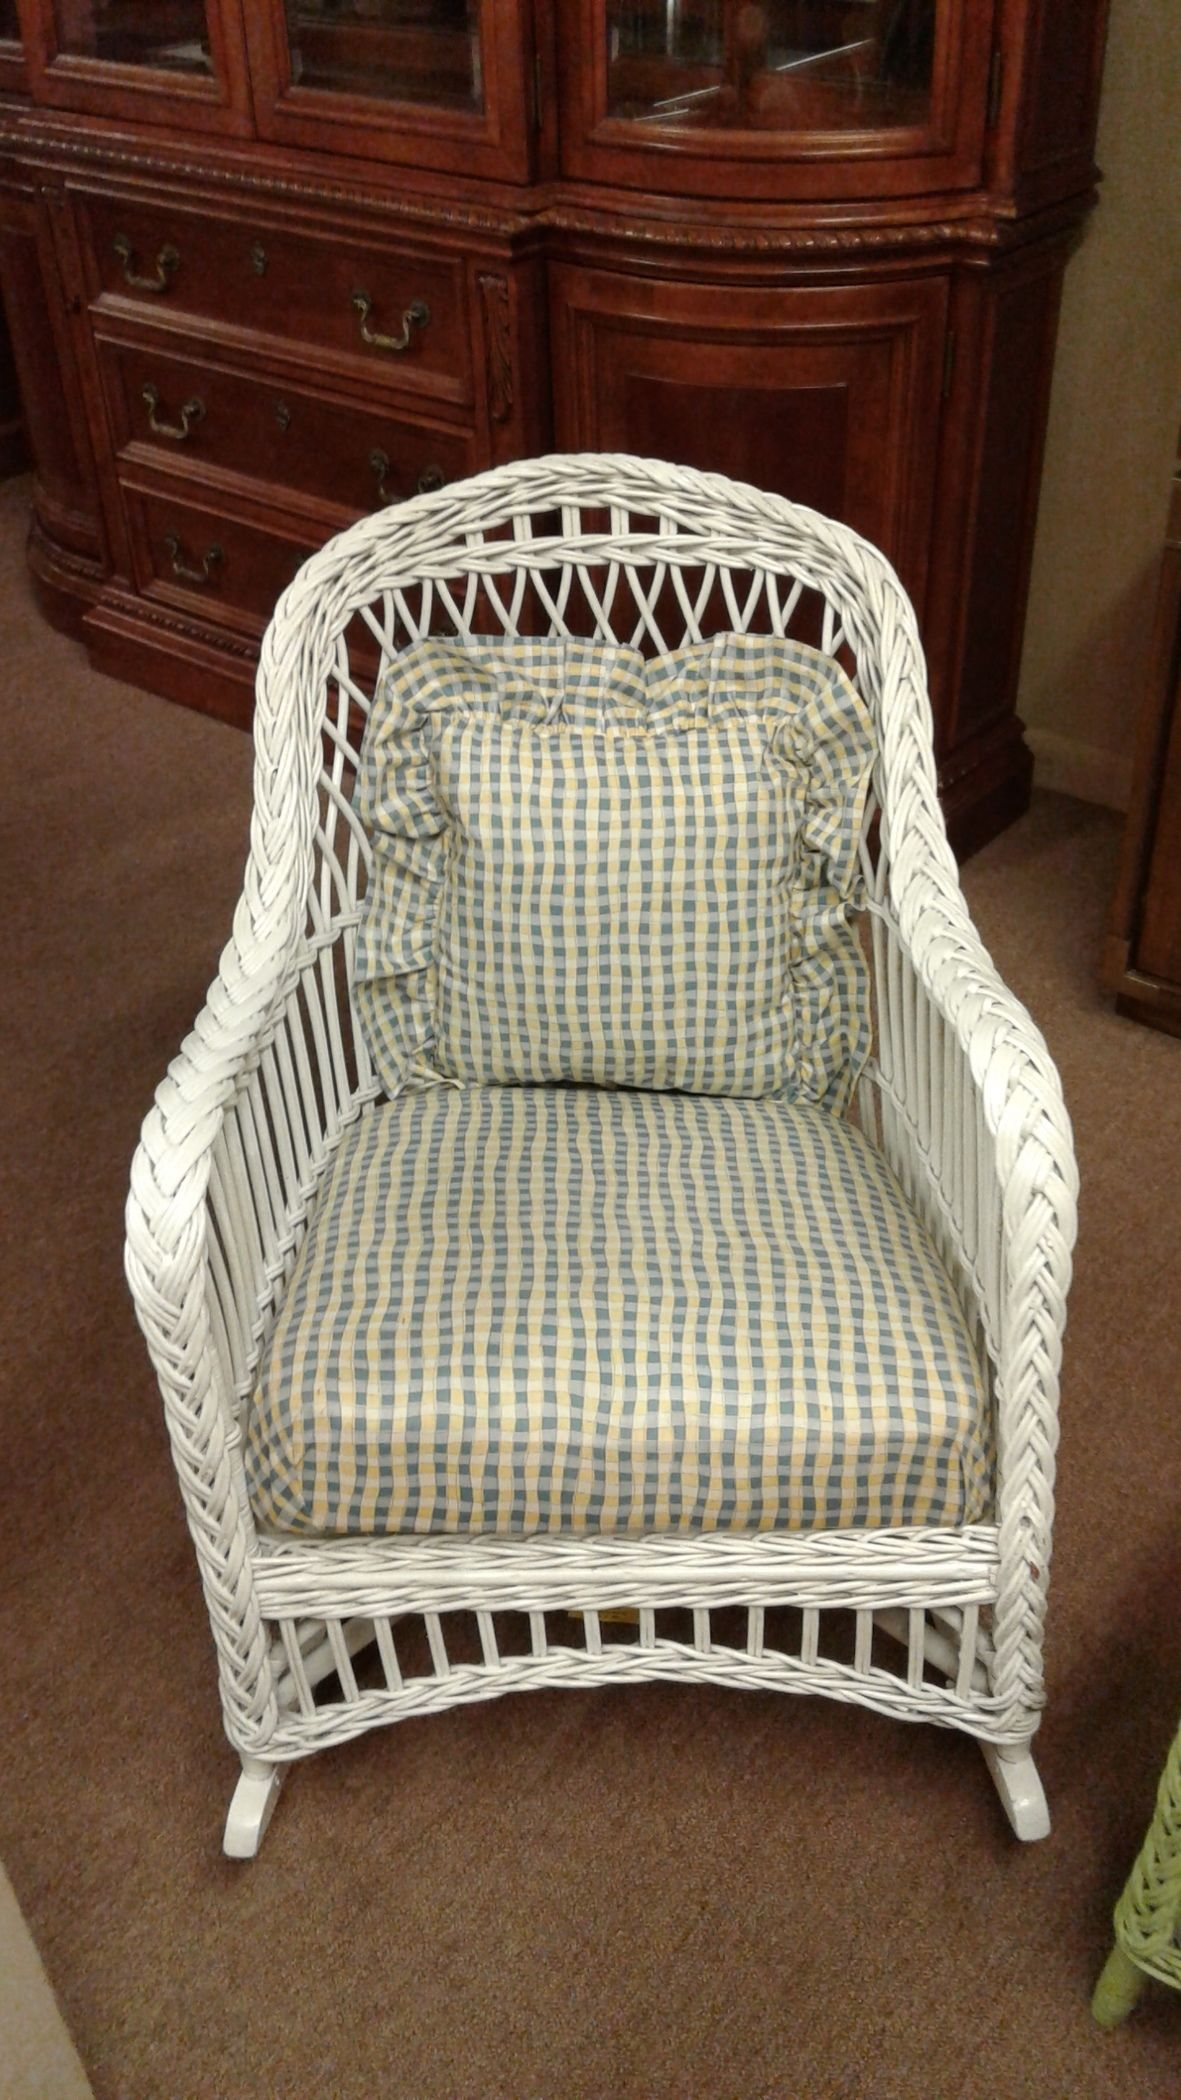 White Wicker Rocker Delmarva Furniture Consignment